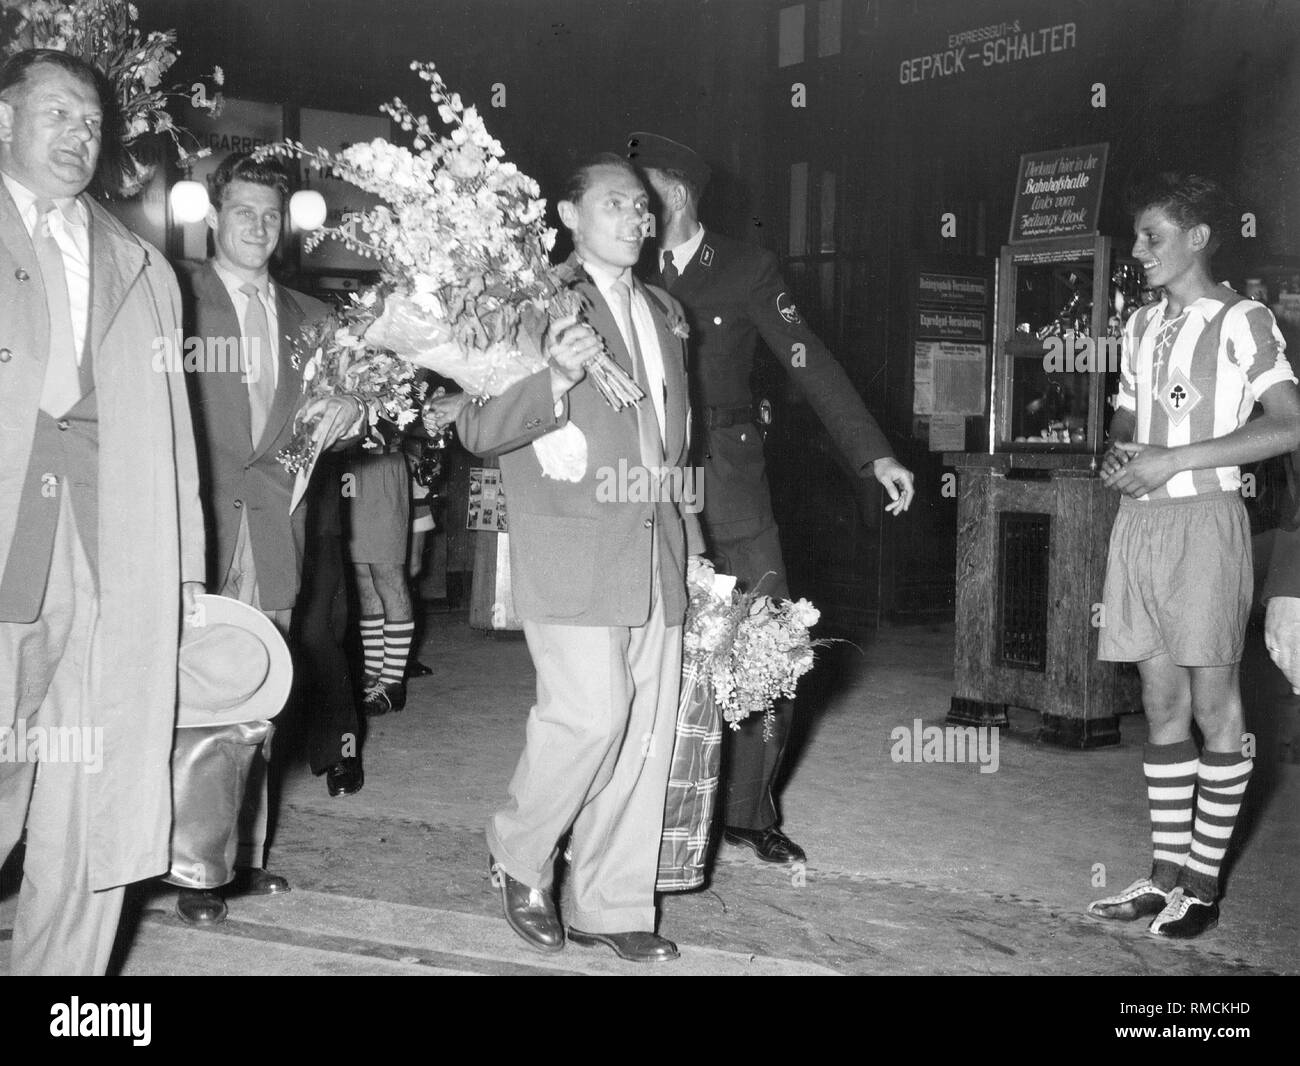 Arrival of the team in Lindau. DFB Vice-President Huber and Max Morlock welcome the fans. In 1954 Germany won its first World Cup in Switzerland. Stock Photo